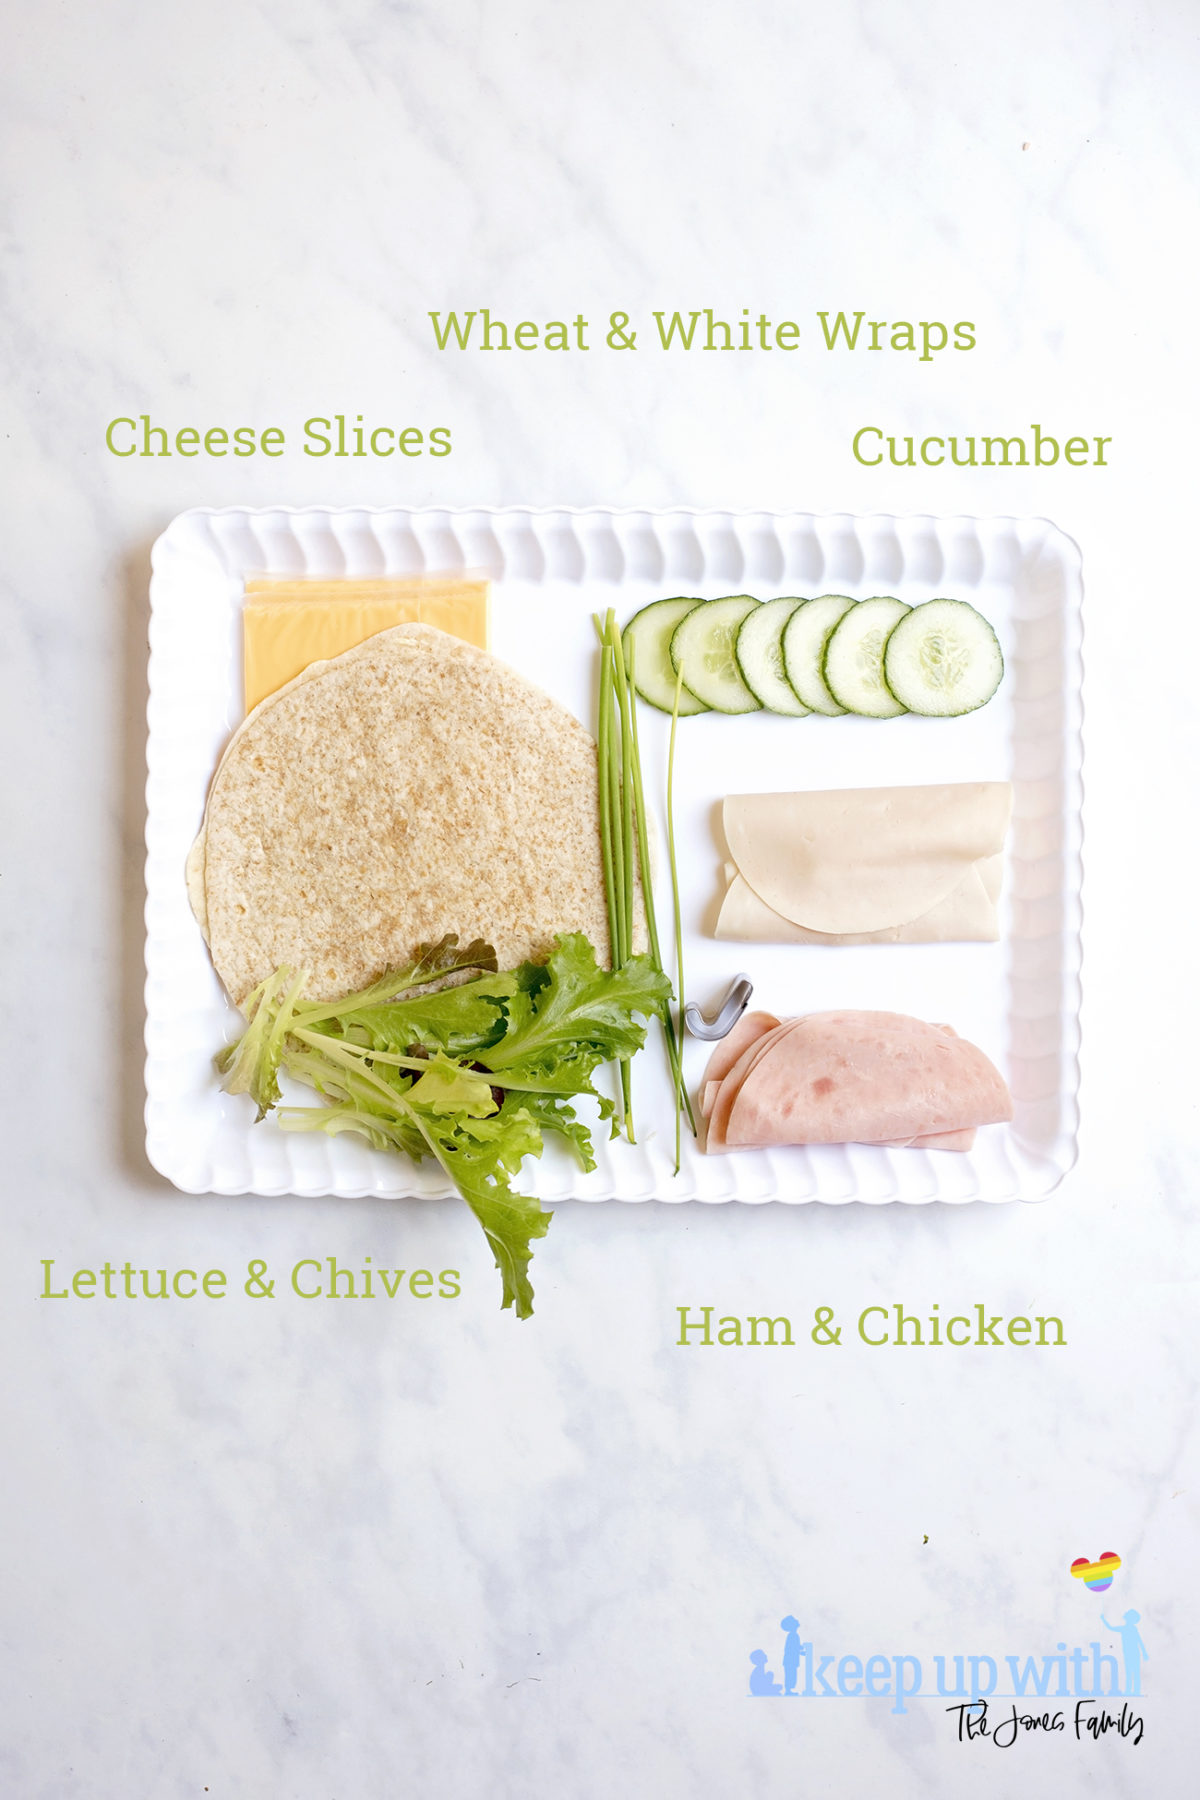 Image shows ingredients needed to make Book Sandwich Wraps. On a white scalloped tray, sat on a white marble top, are two white and wheat wraps, cucumber, ham and chicken slices, lettuce leaves, chives and cheese slices. Image by Sara-Jayne of Keep Up With The Jones Family.